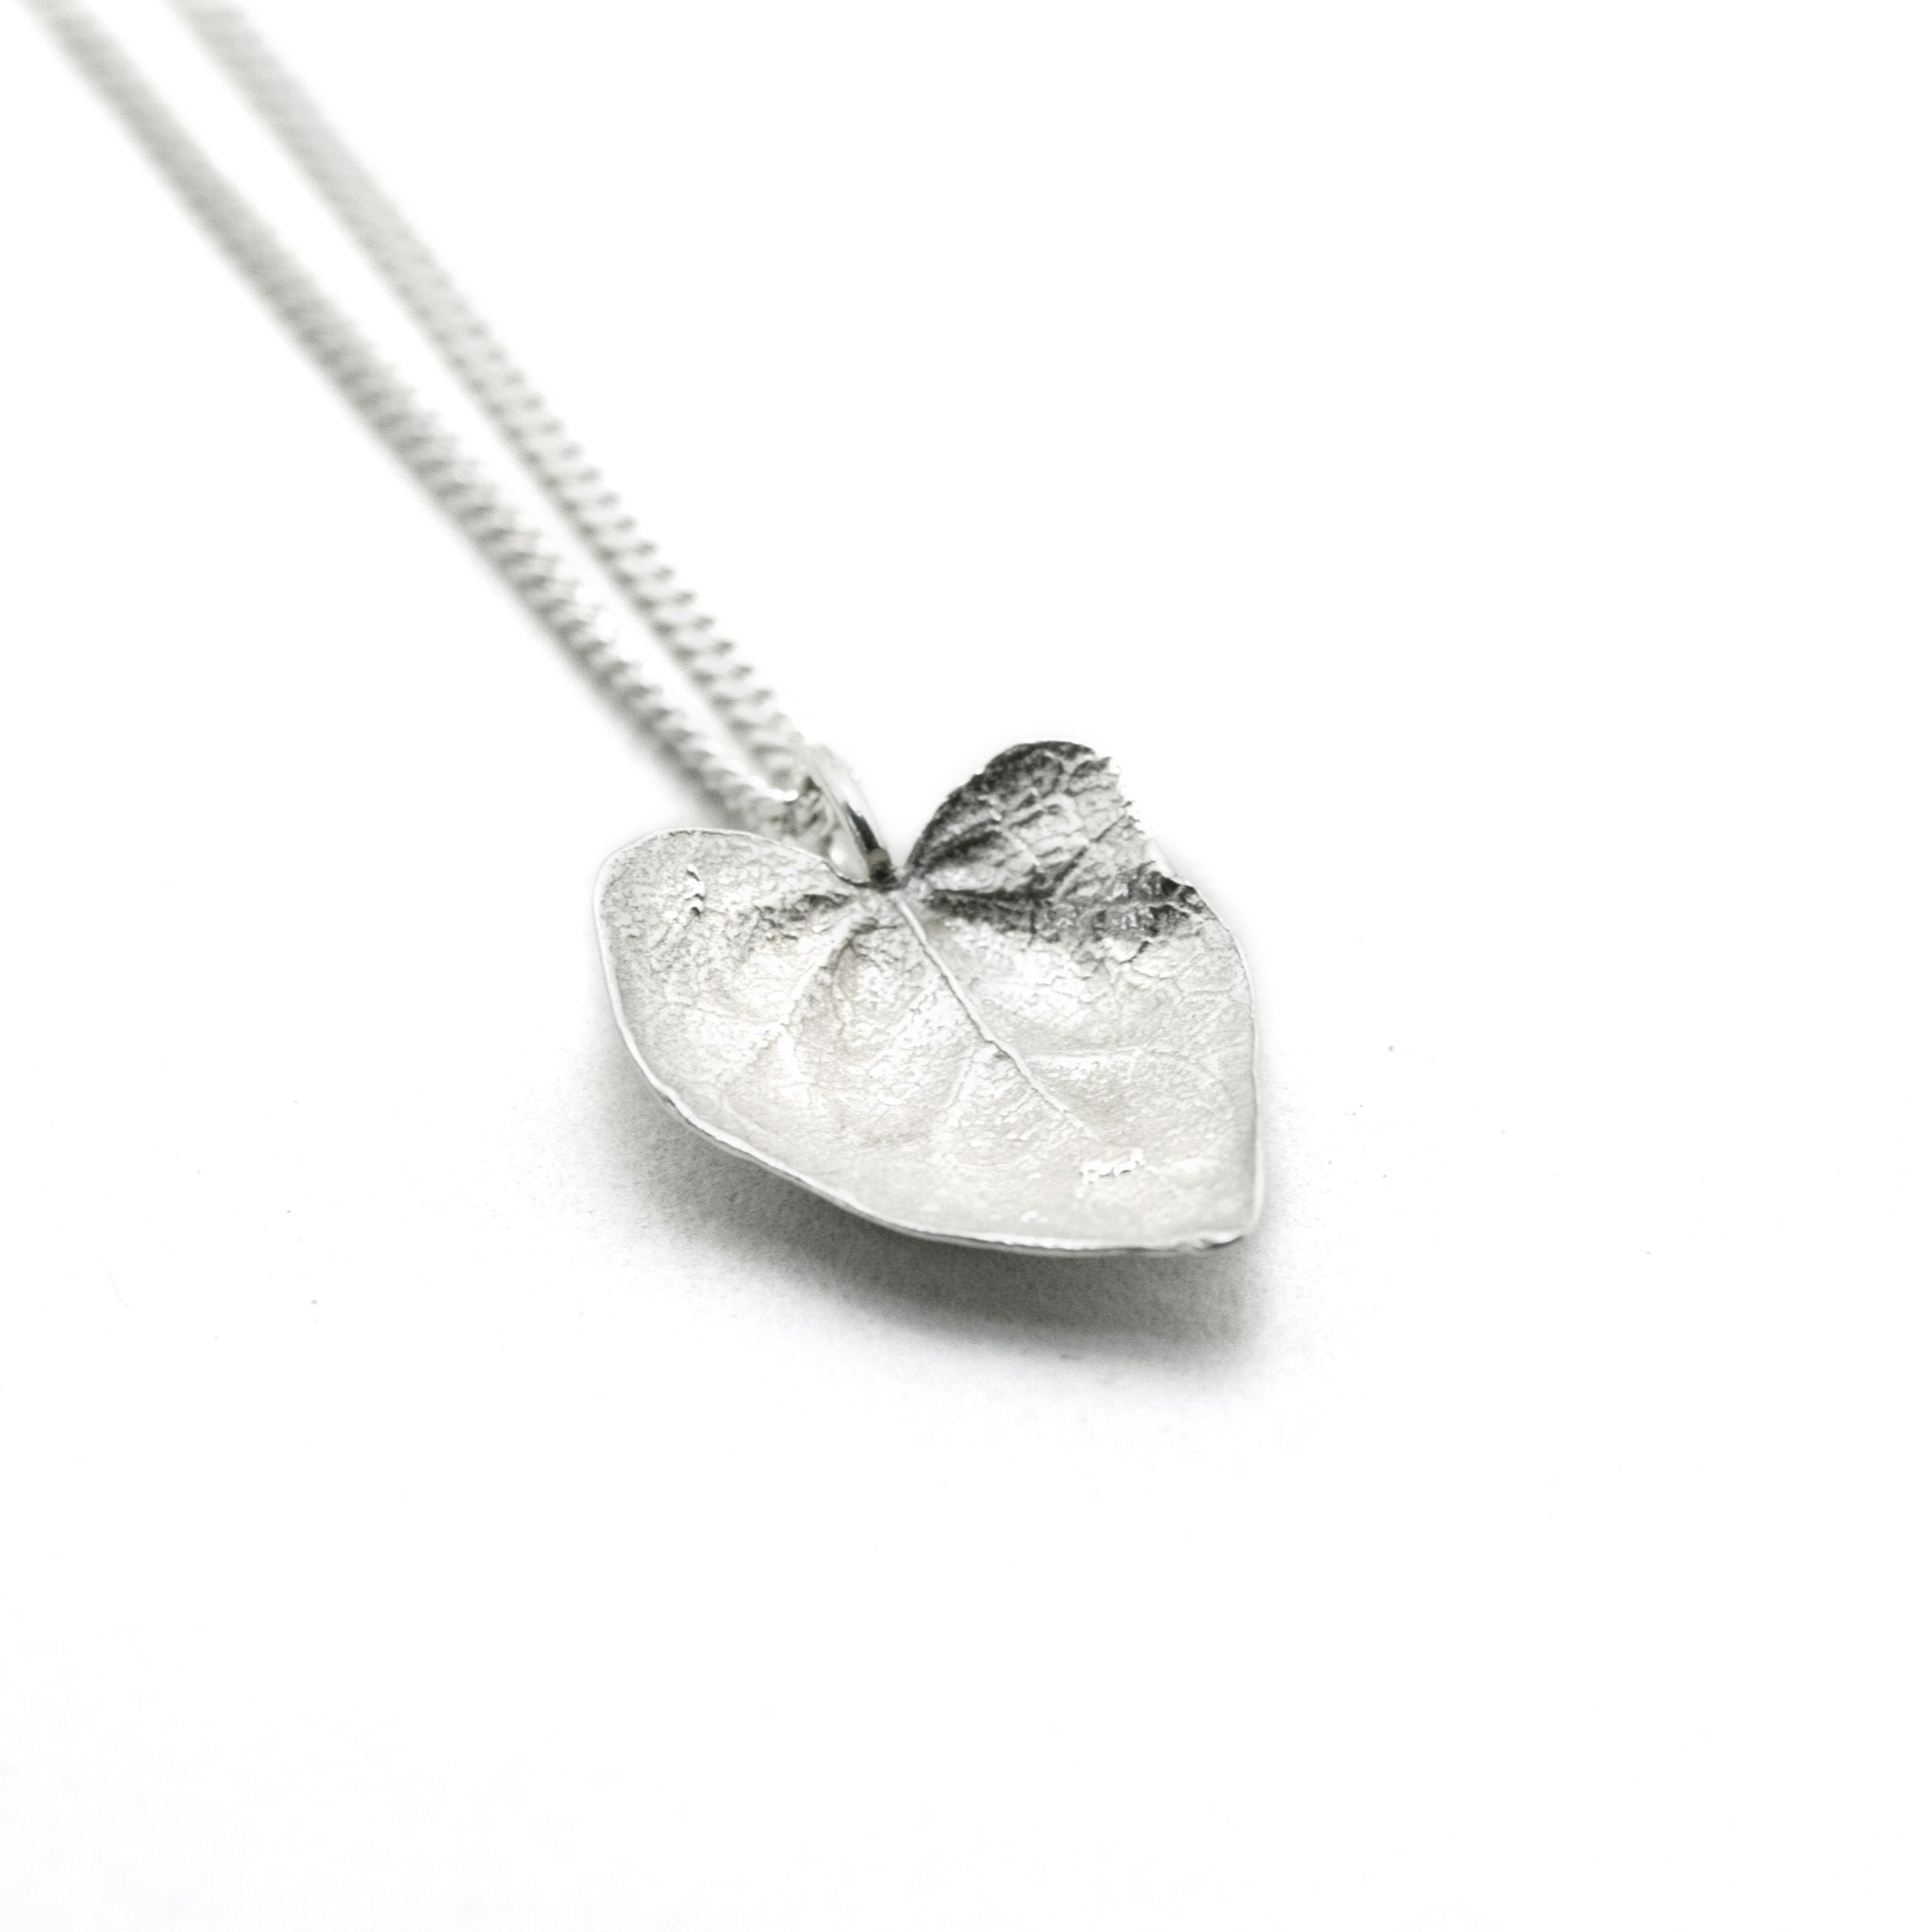 silver ivy leaf necklace on white background